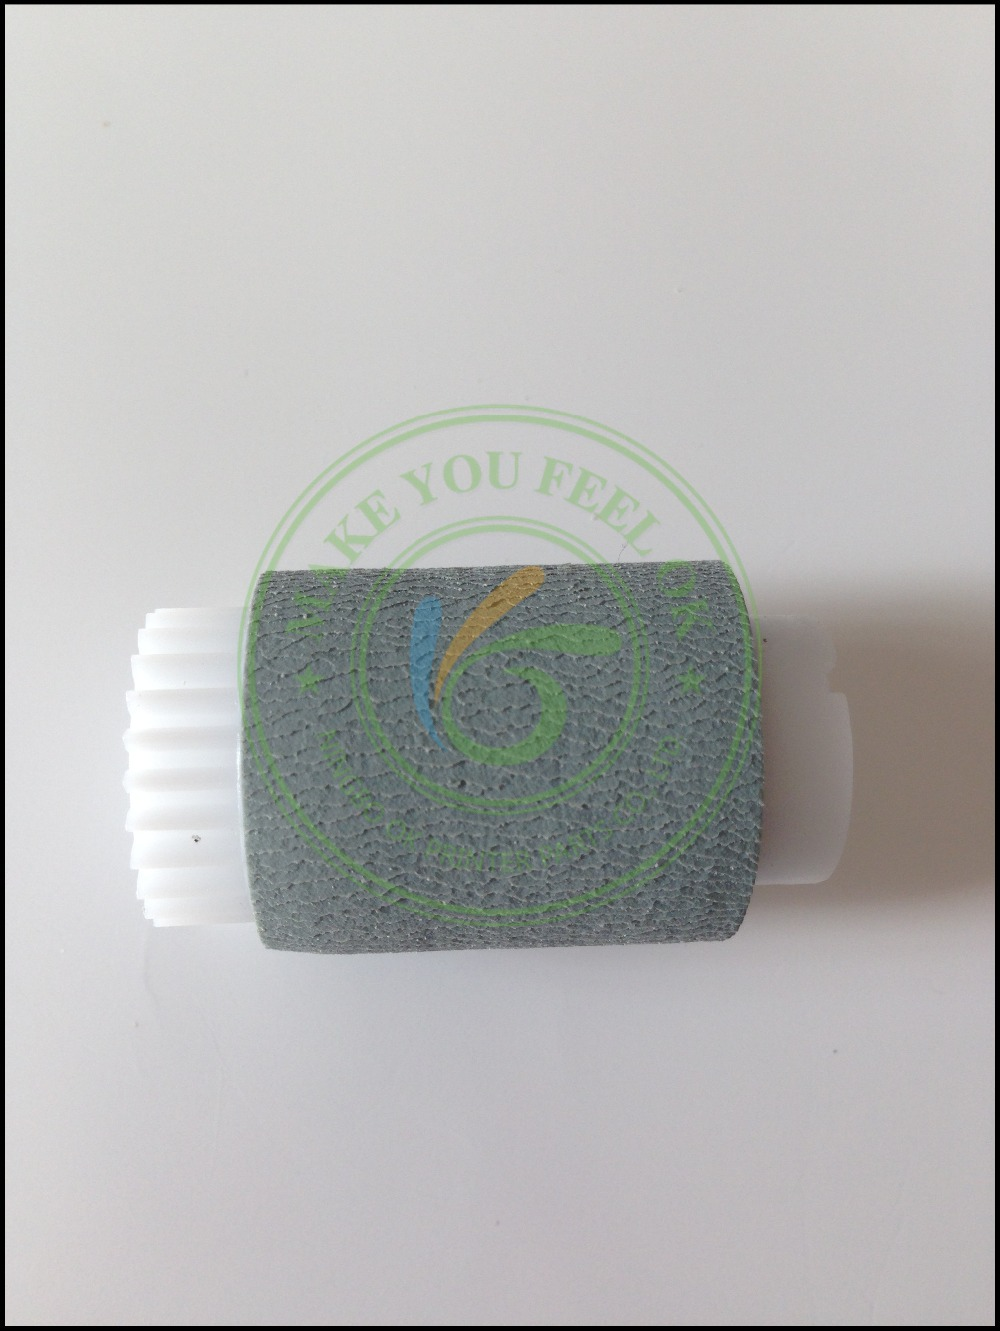 RM1-0036 Paper Pickup Roller for HP 4700 4730 4005 4200 4250 4300 4345 4350 5200